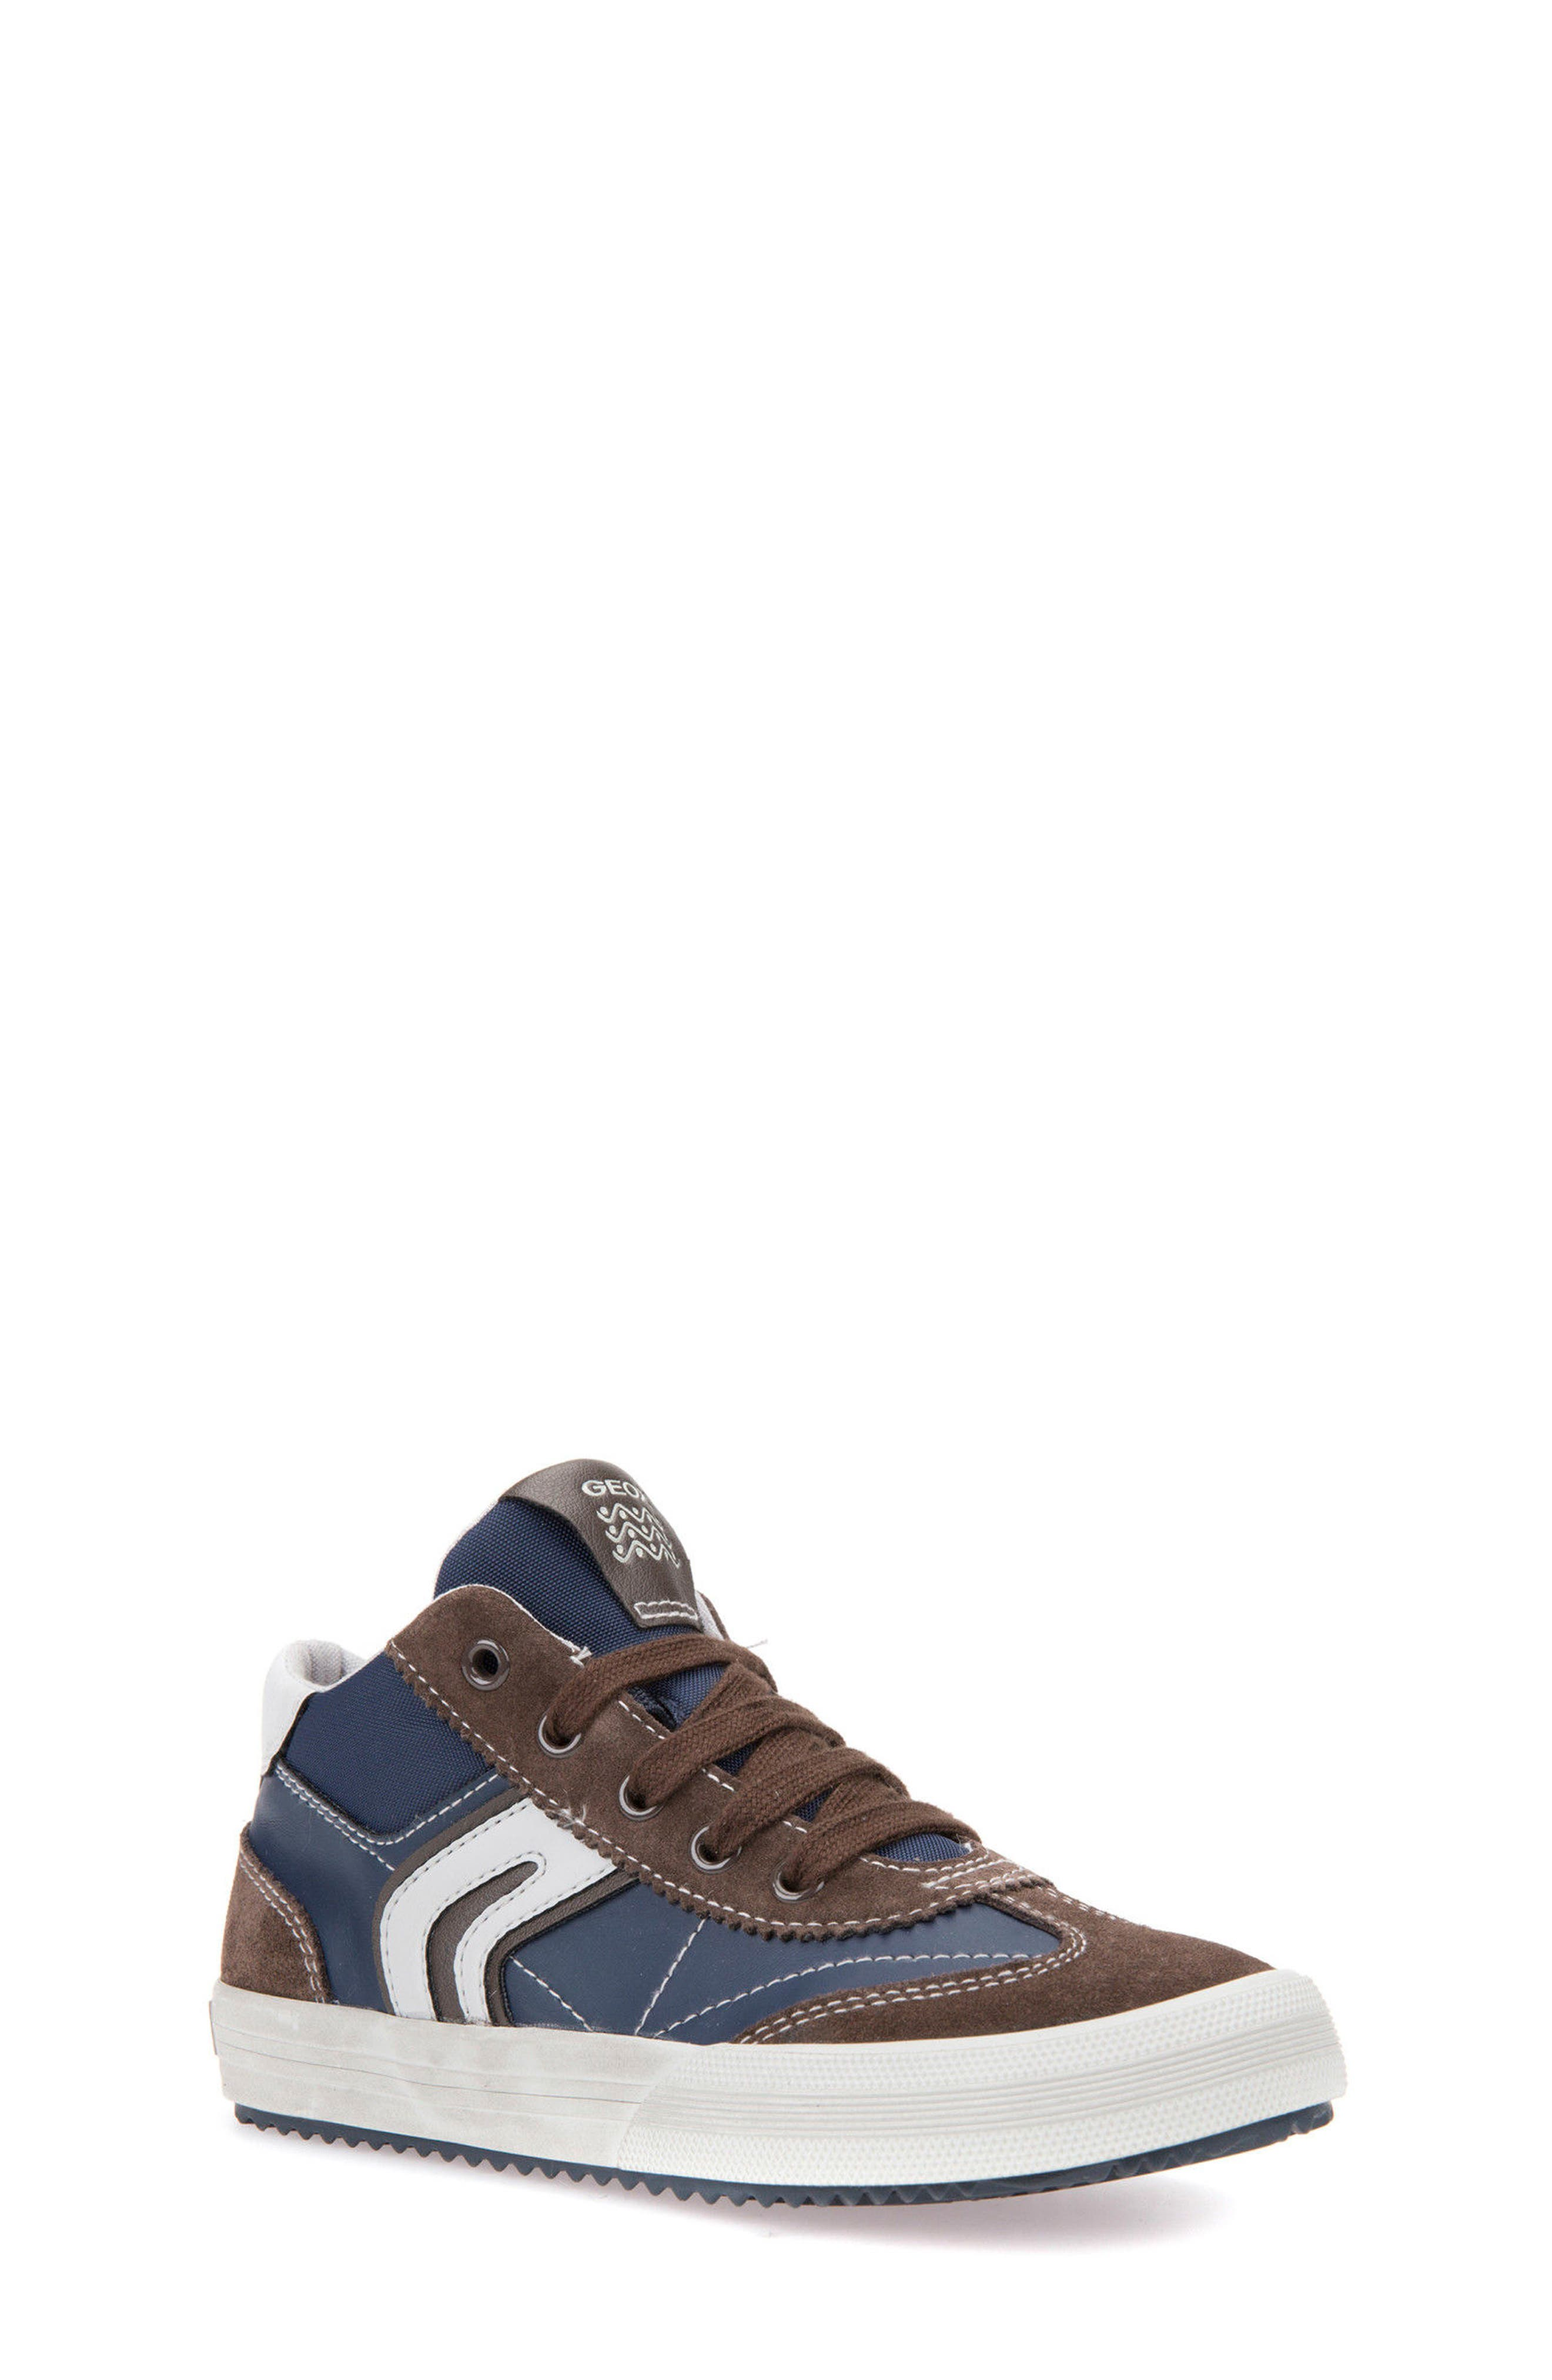 Alonisso Mid Top Sneaker,                             Main thumbnail 1, color,                             Navy/ Brown